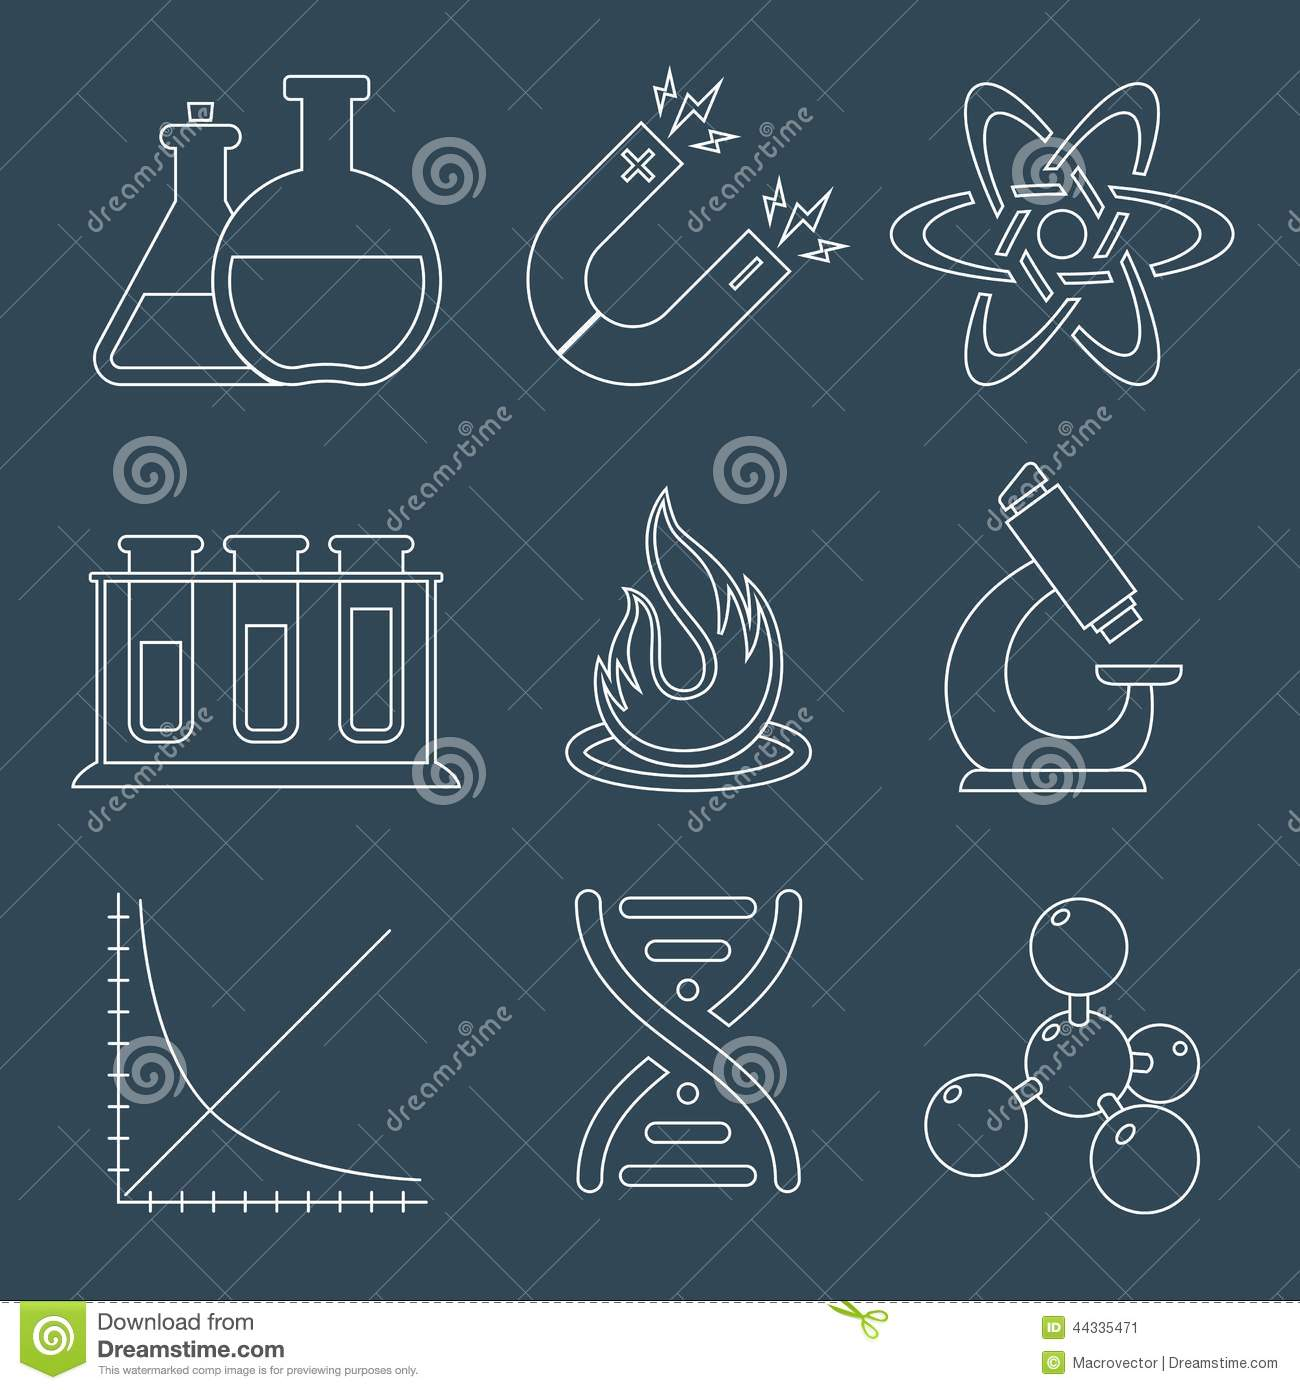 All Credit Cards >> Physics Science Icons Flat Stock Vector - Image: 44335471